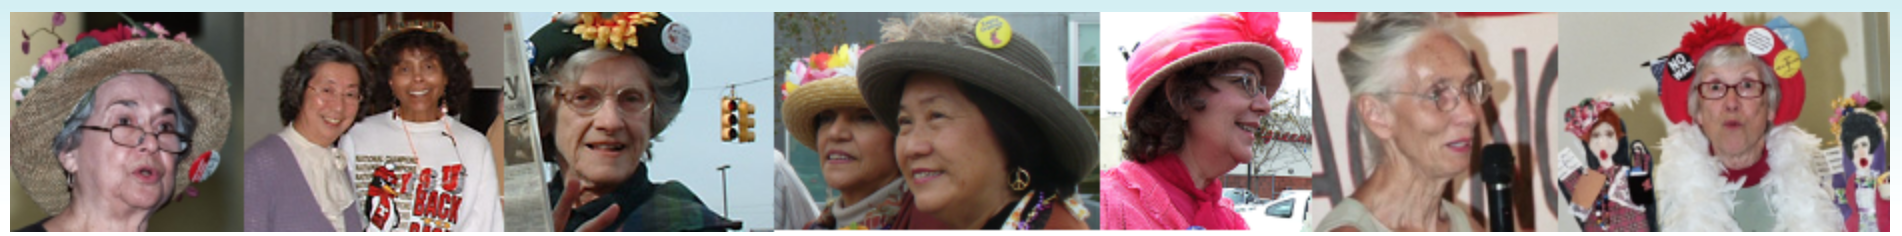 Raging Grannies International -- a group of non-violent older women who protest a variety of issues